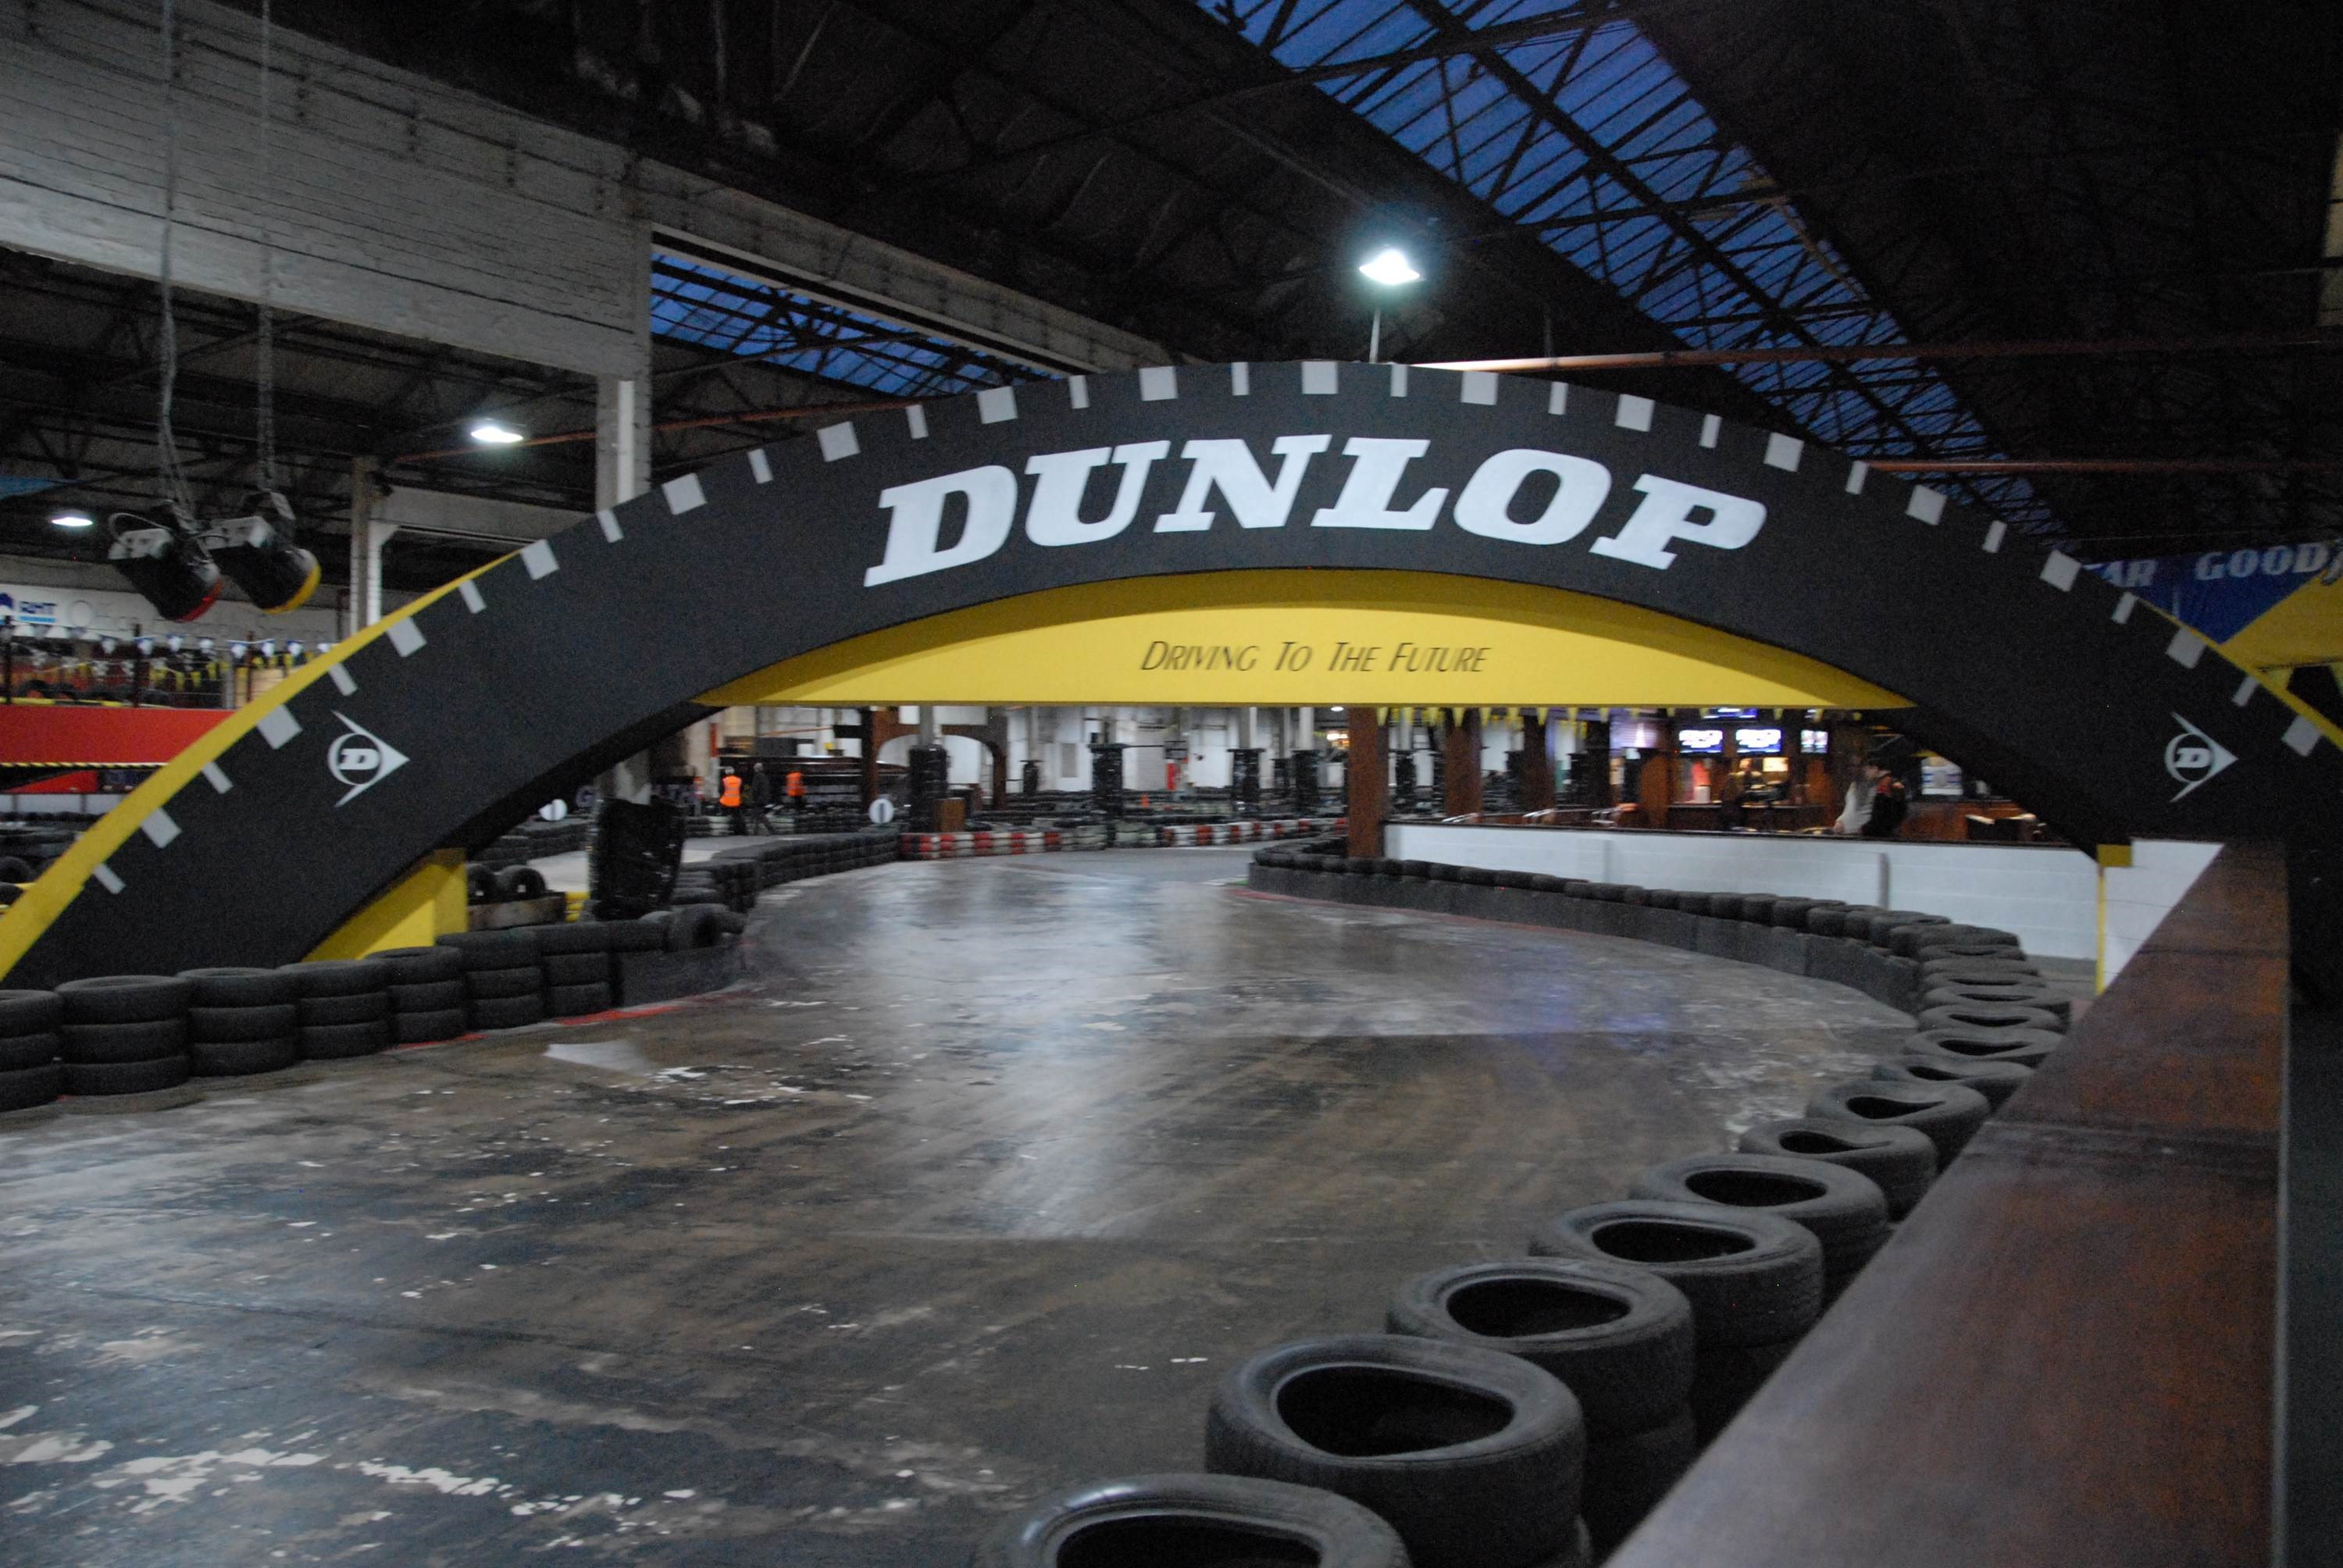 TeamSport Karting Warrington Dunlop bridge no kart.JPG